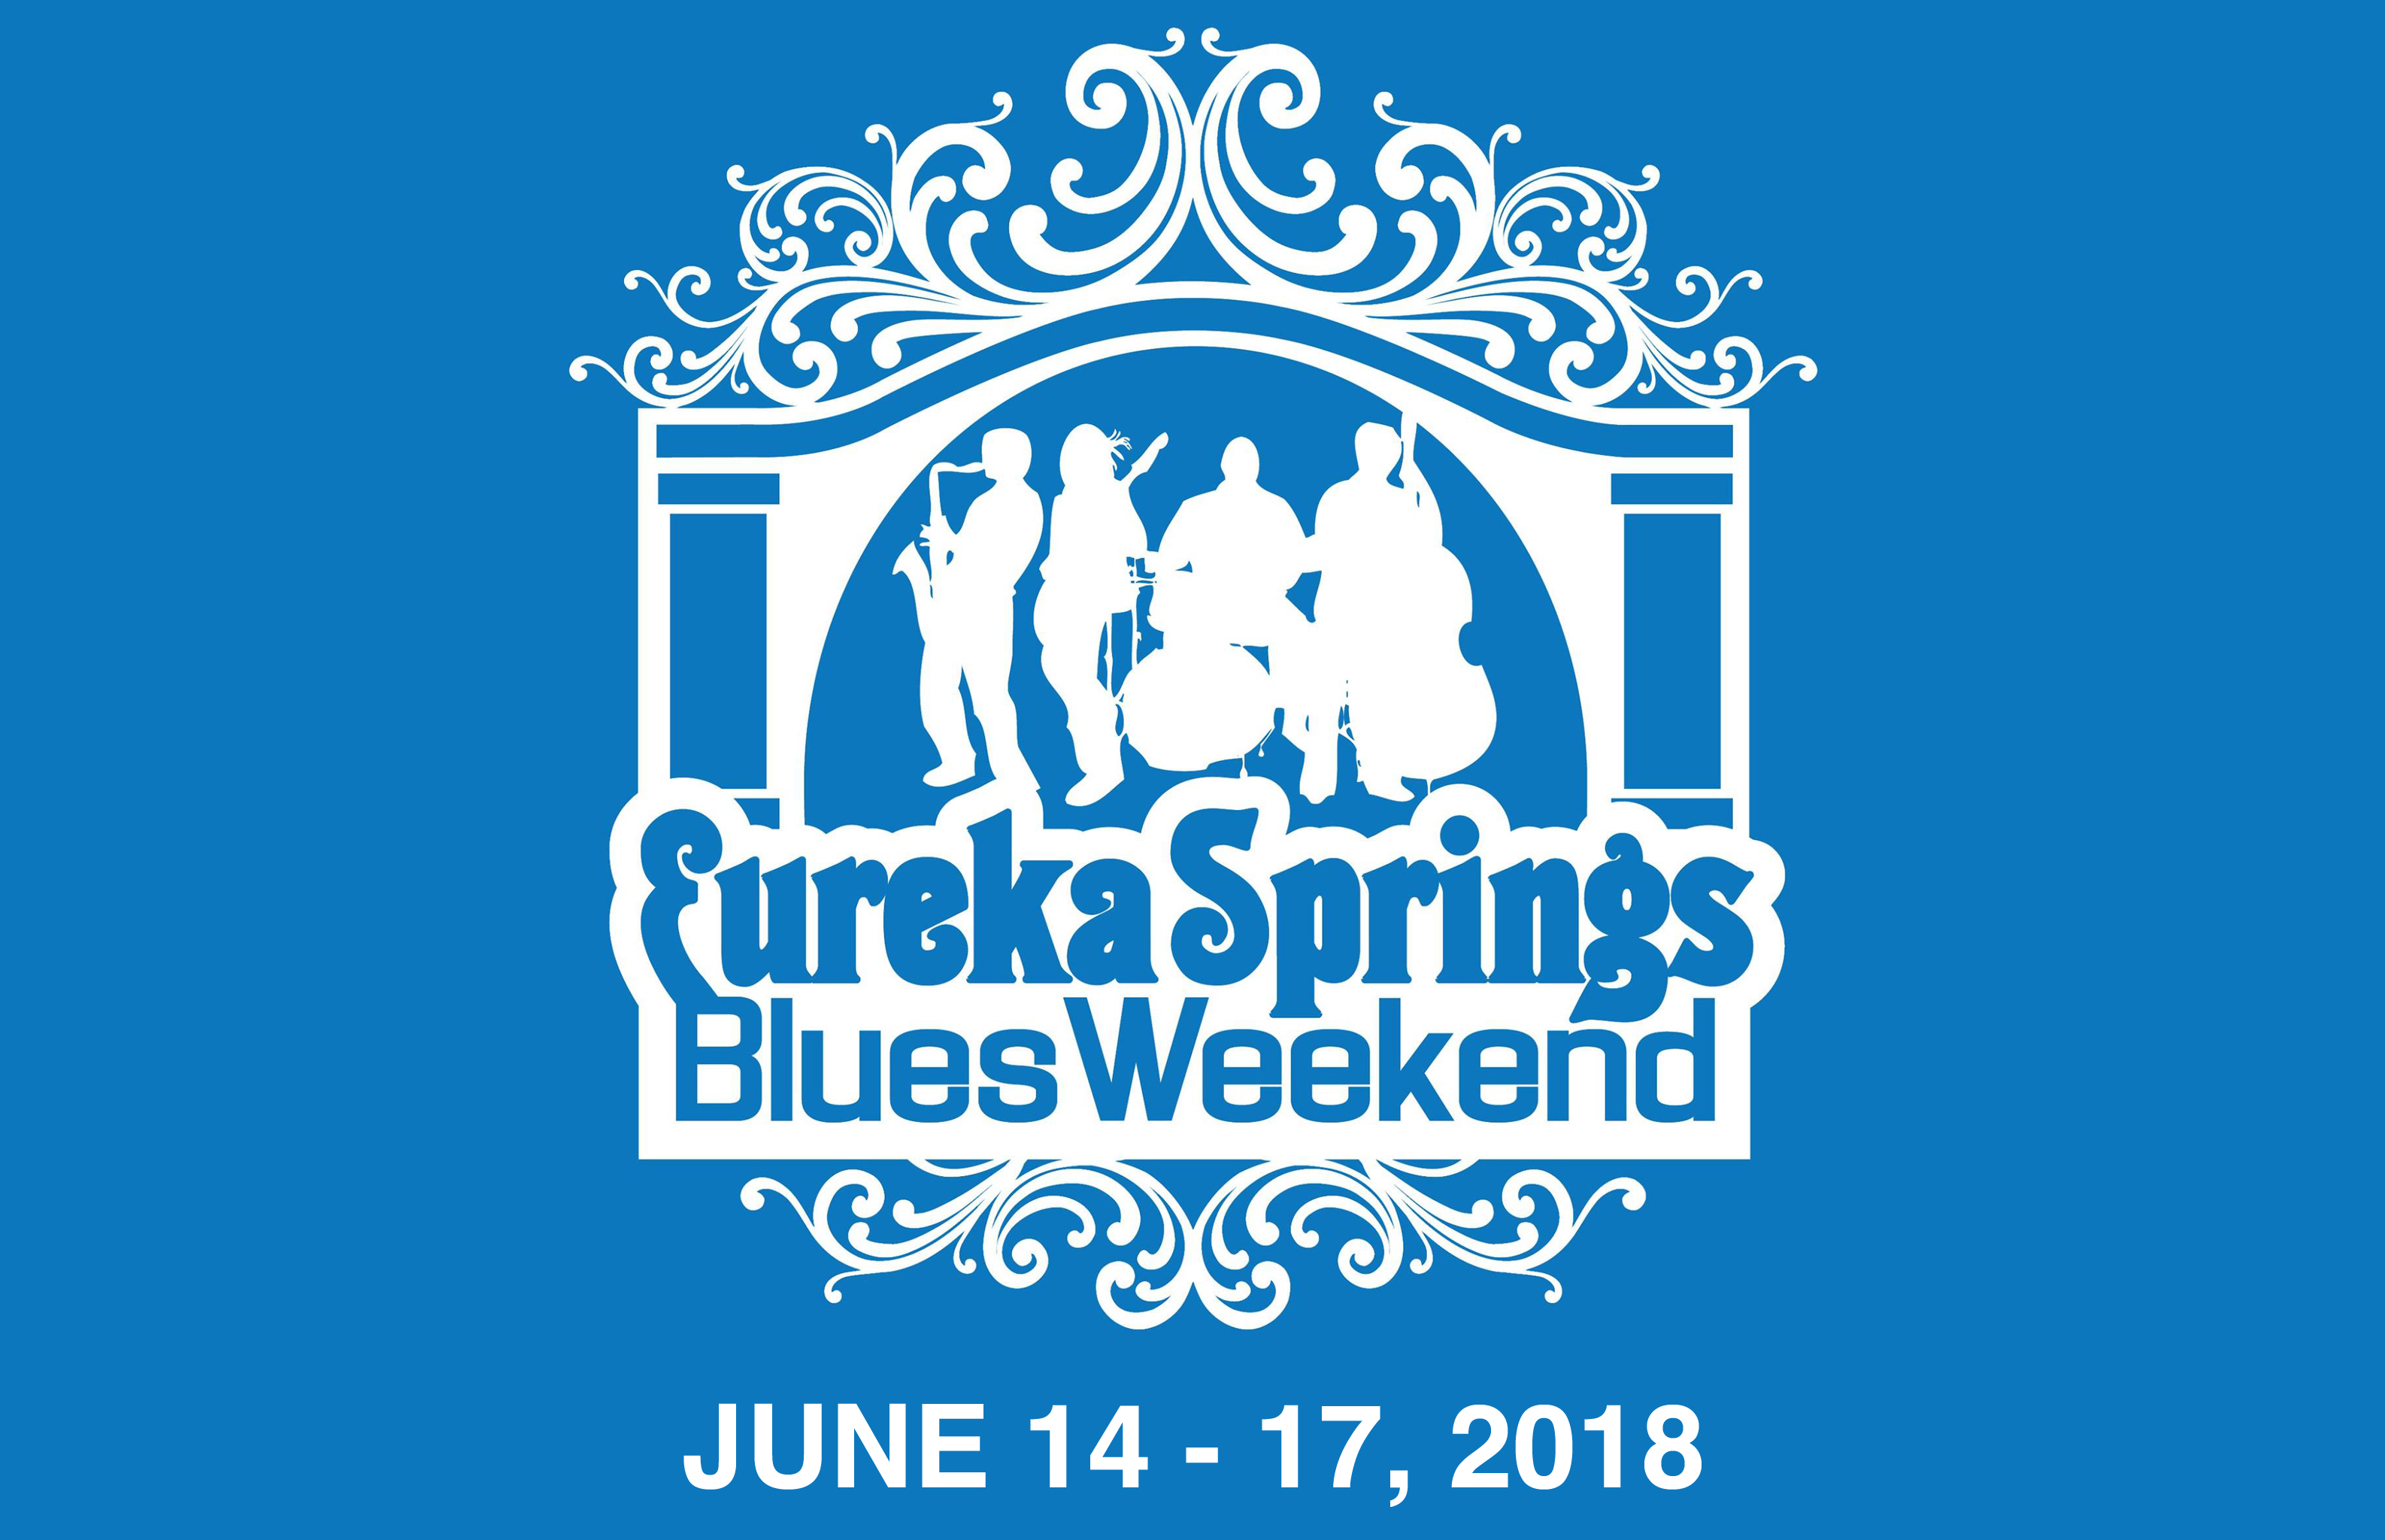 Eureka Springs Blues Weekend 2018